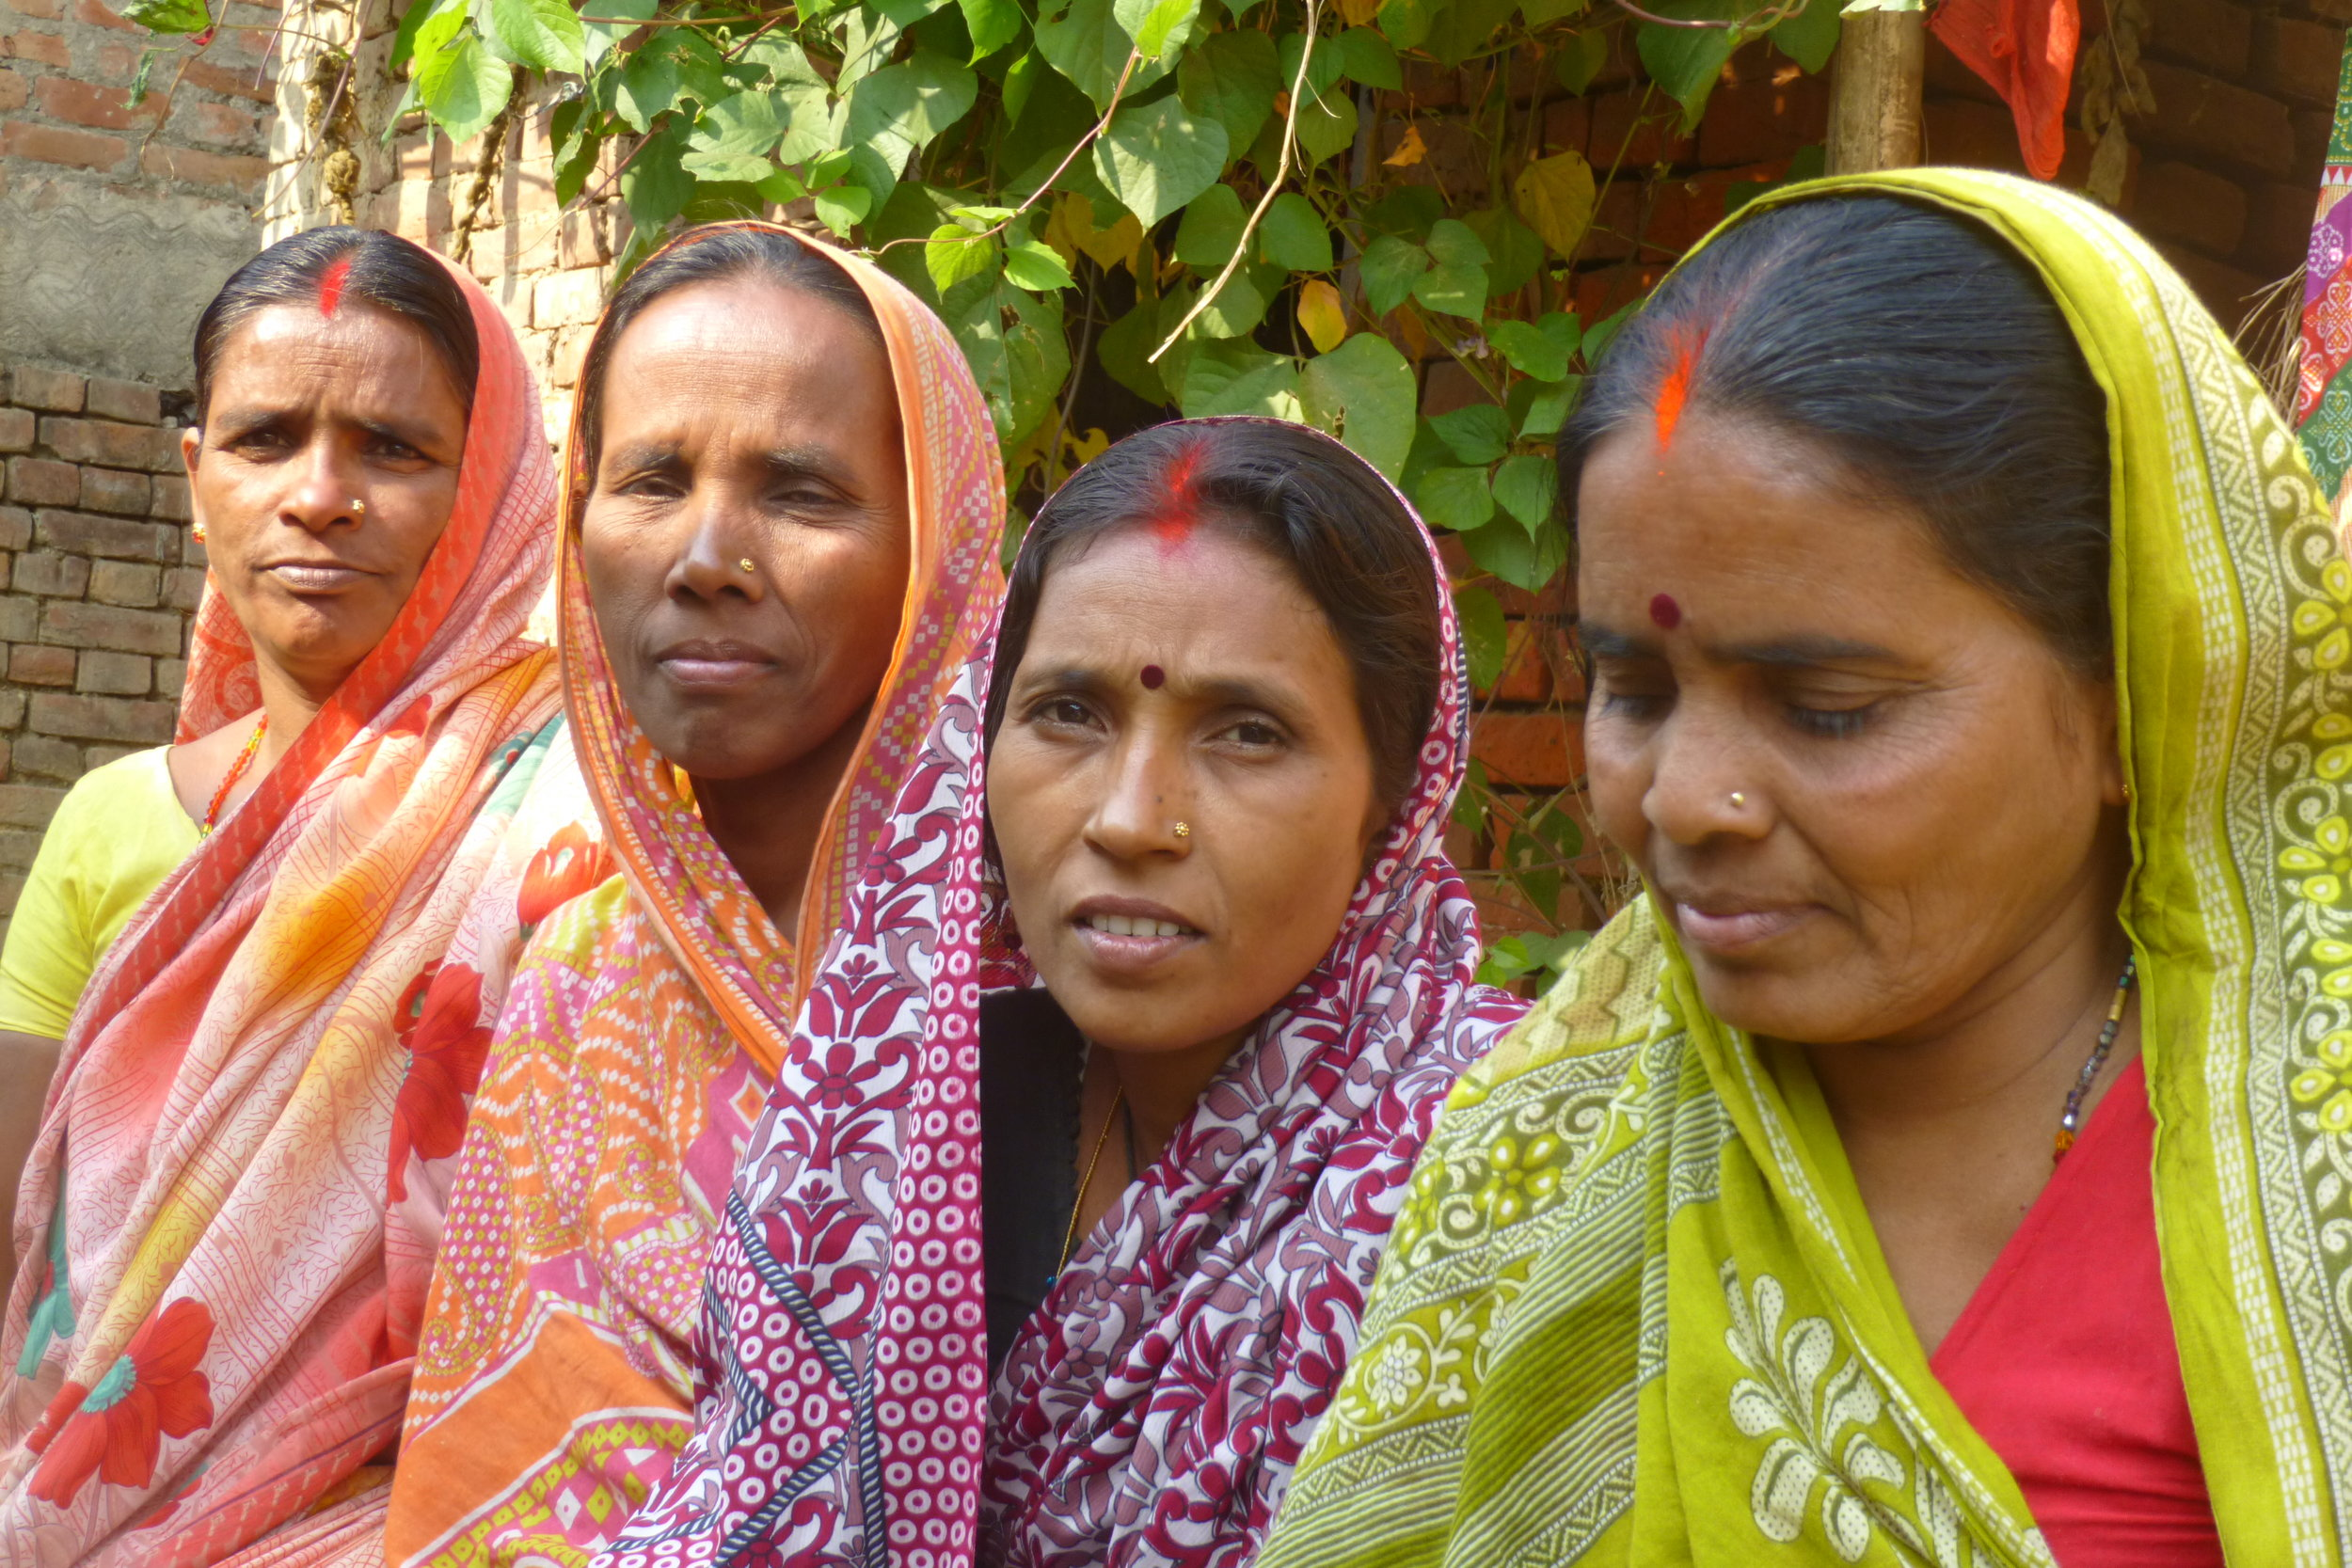 Now that Sambha, Prabhouti, Pavitr, and the other women in the self-help group know each other they can offer continuing support even though Chetna's direct involvement has ended - Photo by Sarah K.